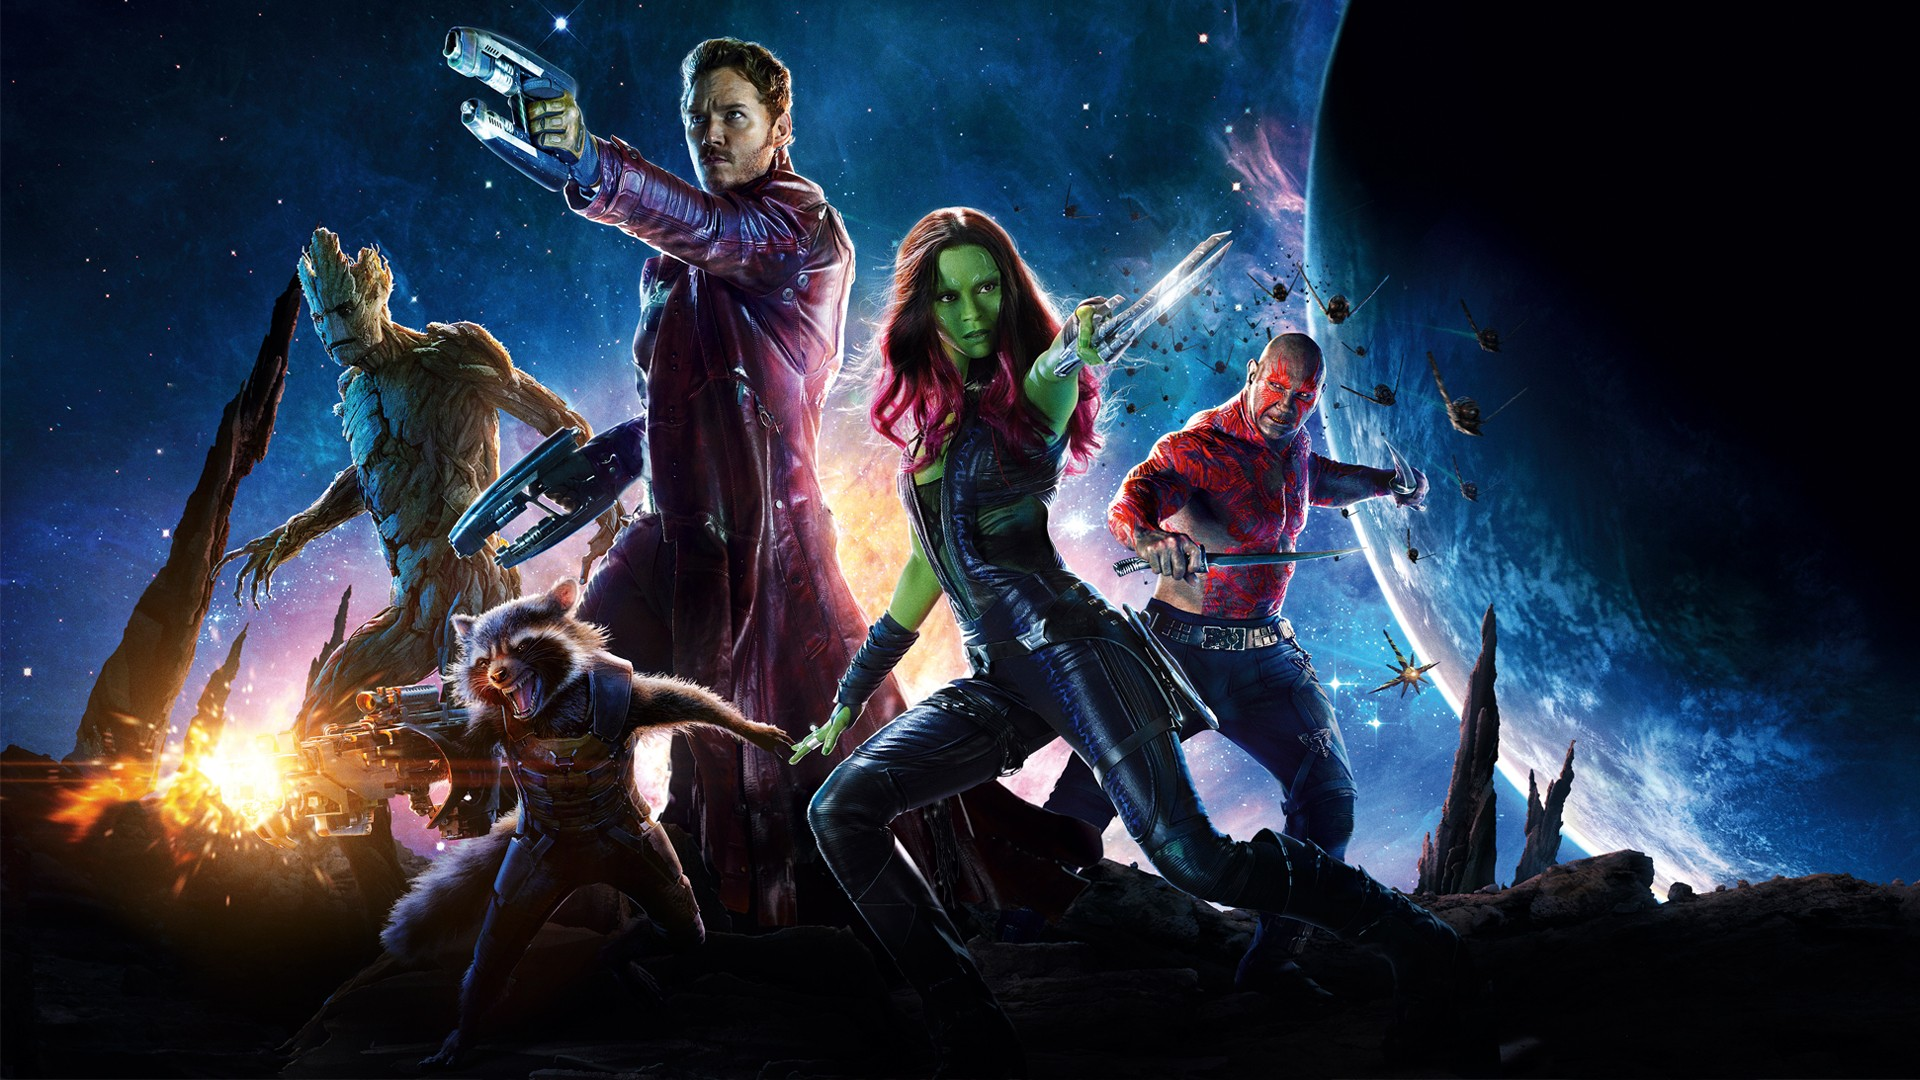 Guardians-of-the-Galaxy-wallpaper-wp360384